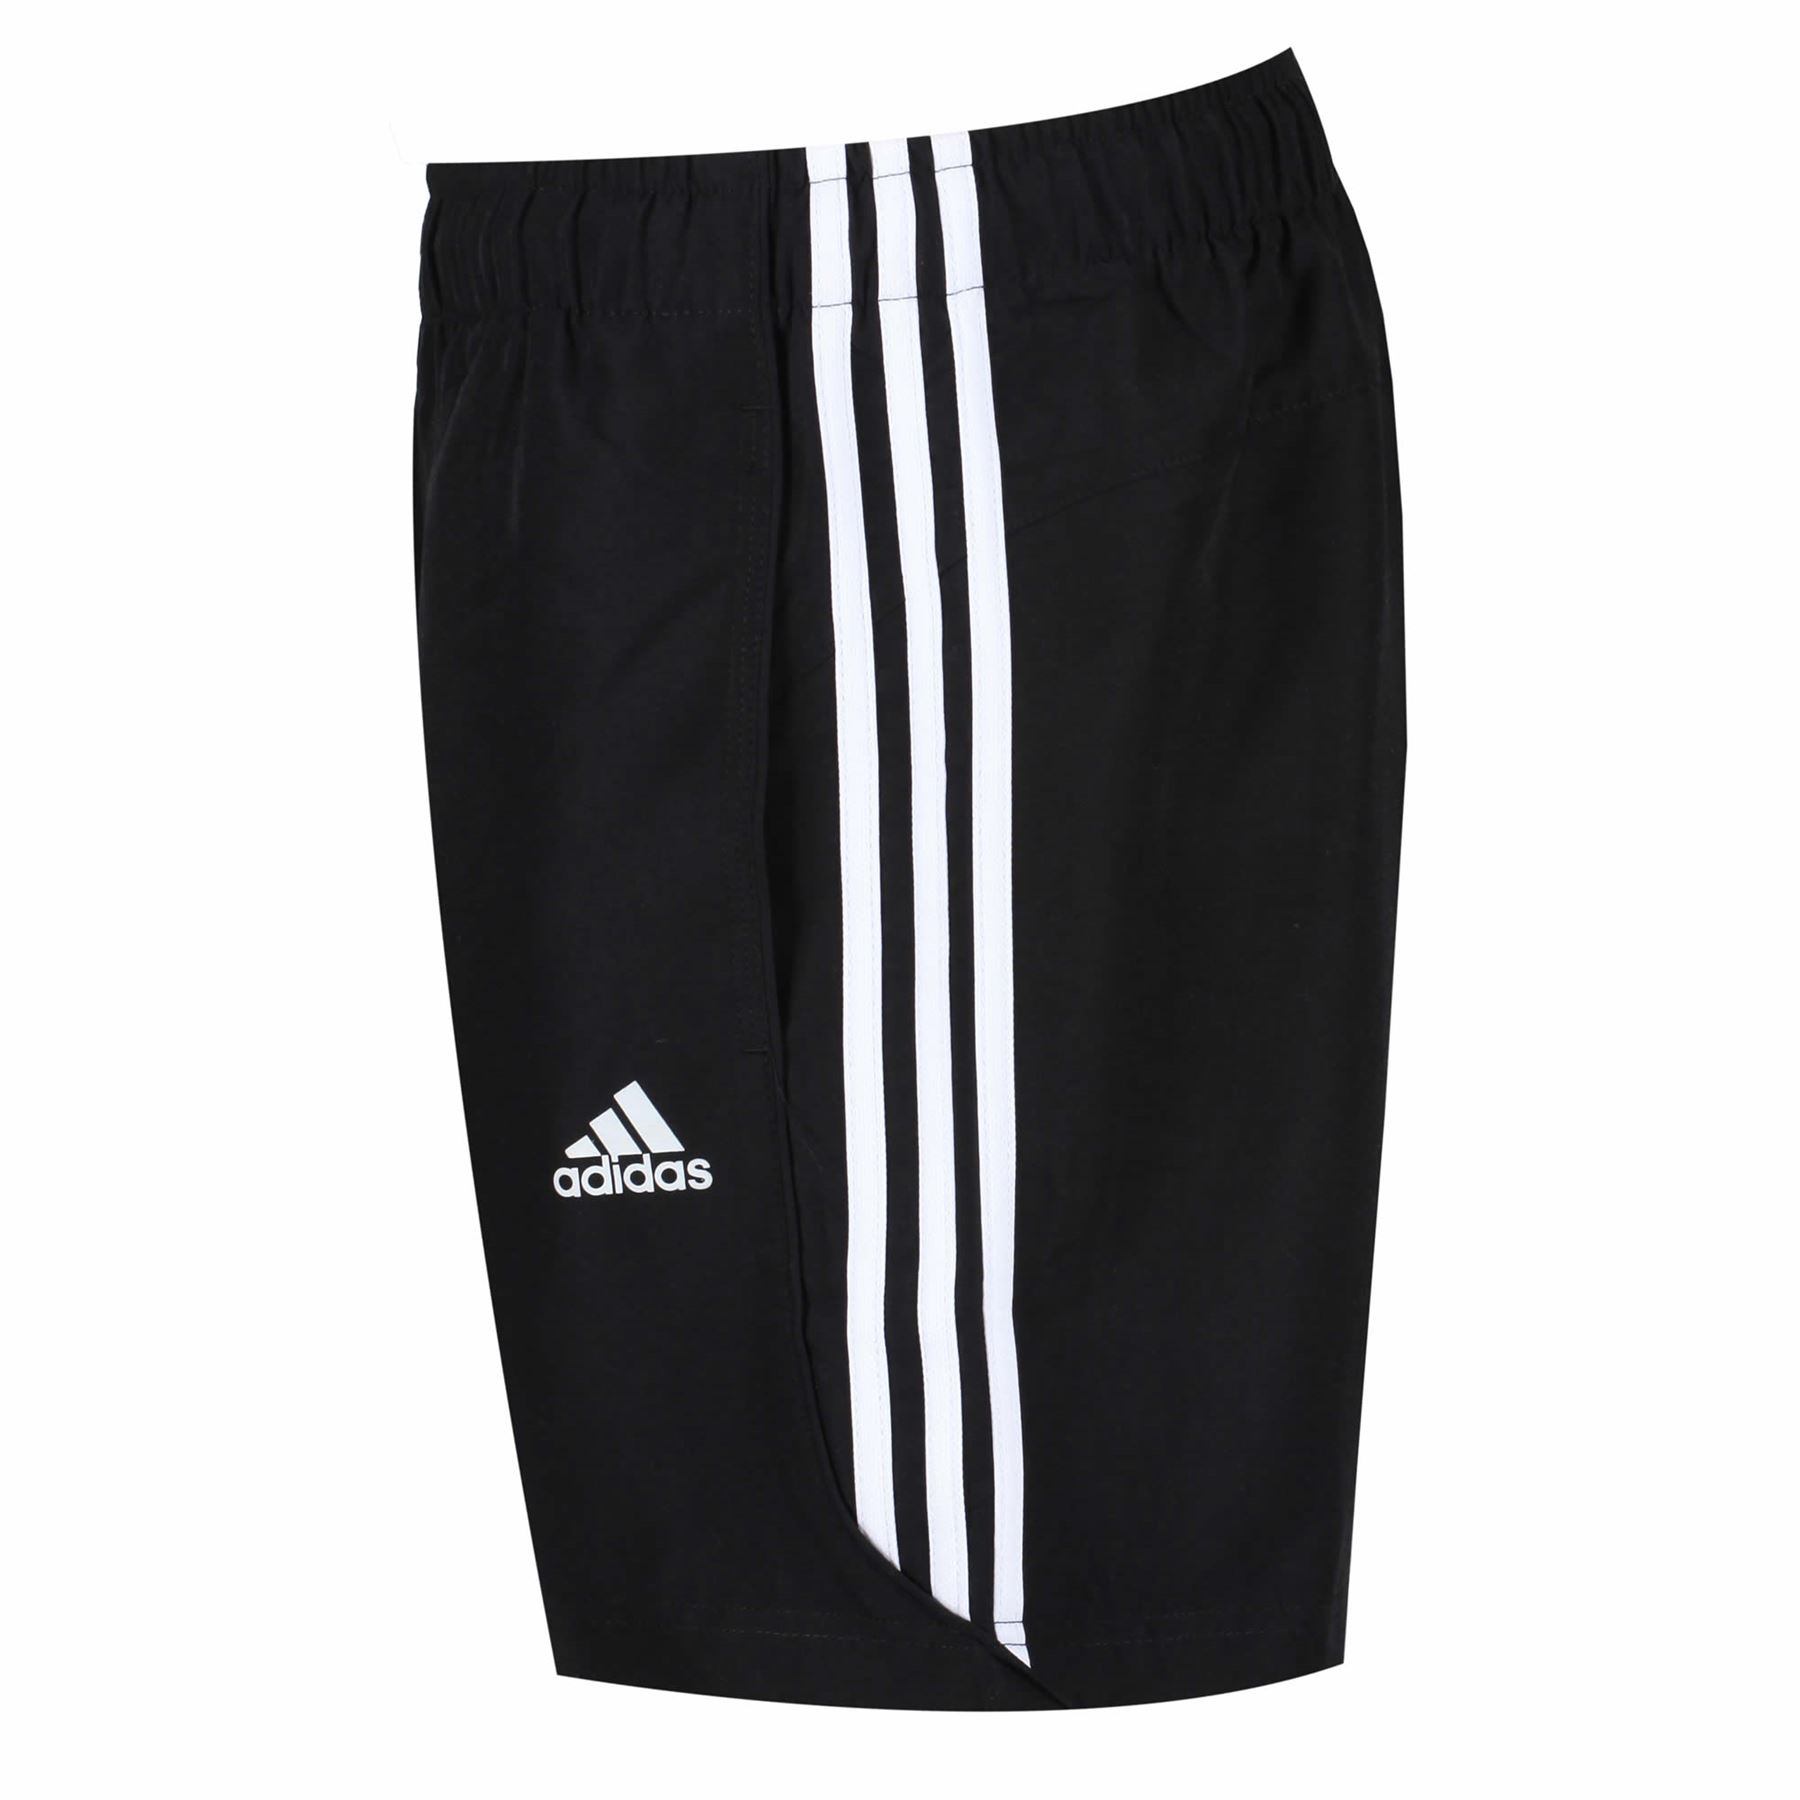 adidas ESSENTIALS 3 STRIPE CHELSEA SHORTS MEN S BLACK WHITE CLIMALITE GYM cebdd5329